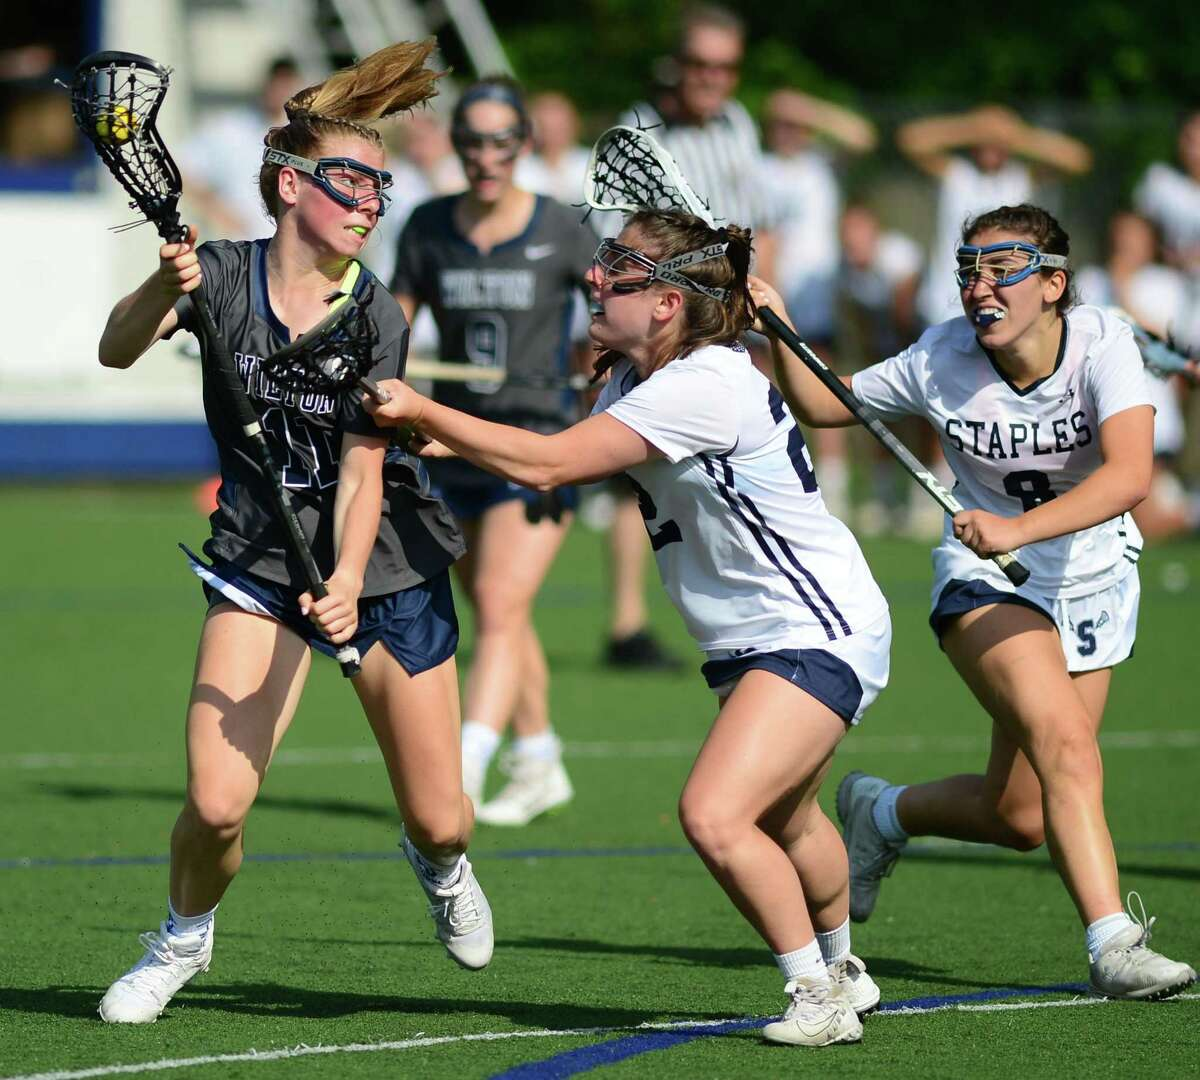 Warrior #11 Olivia Gladstein tries to get a shot past Wrecker #22 Alexa Mysel as the Staples High School Wreckers take on the Wilton High School Warriors in their CIAC Class L girls lacrosse state tournament quarterfinal game at Staples High School in Westport, Conn.